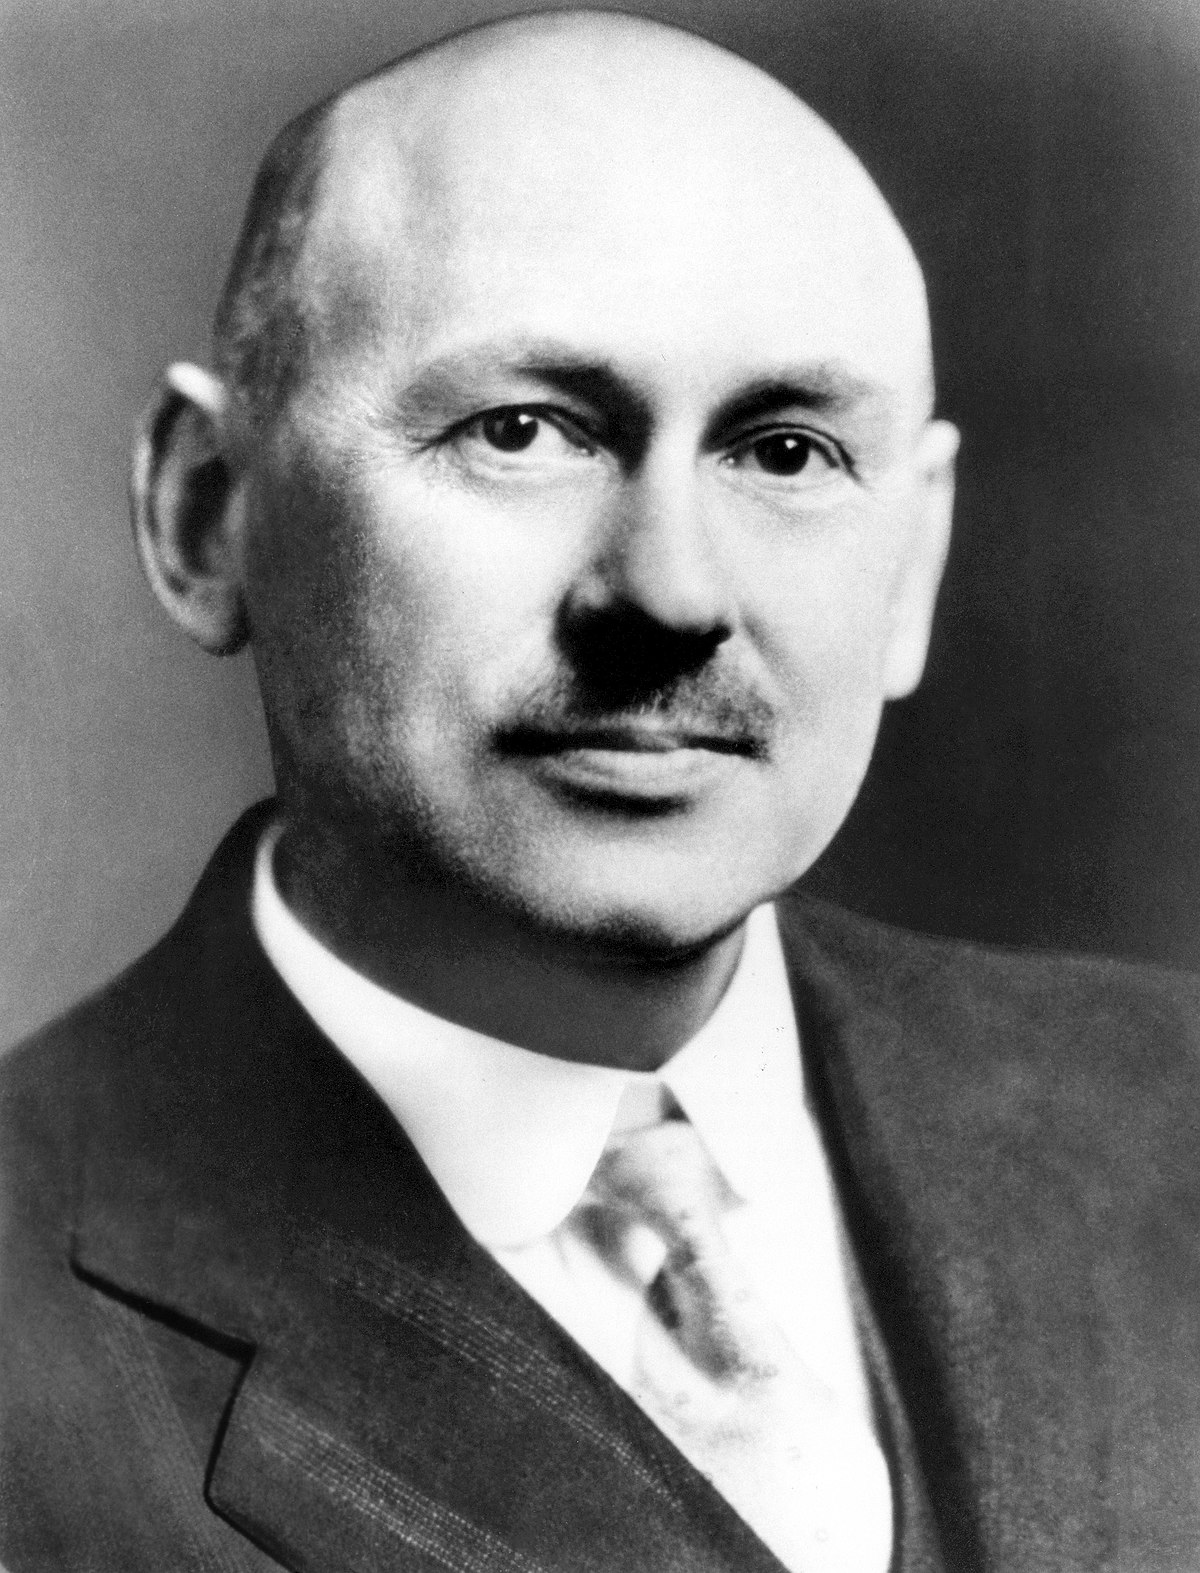 Image result for robert goddard first rocket